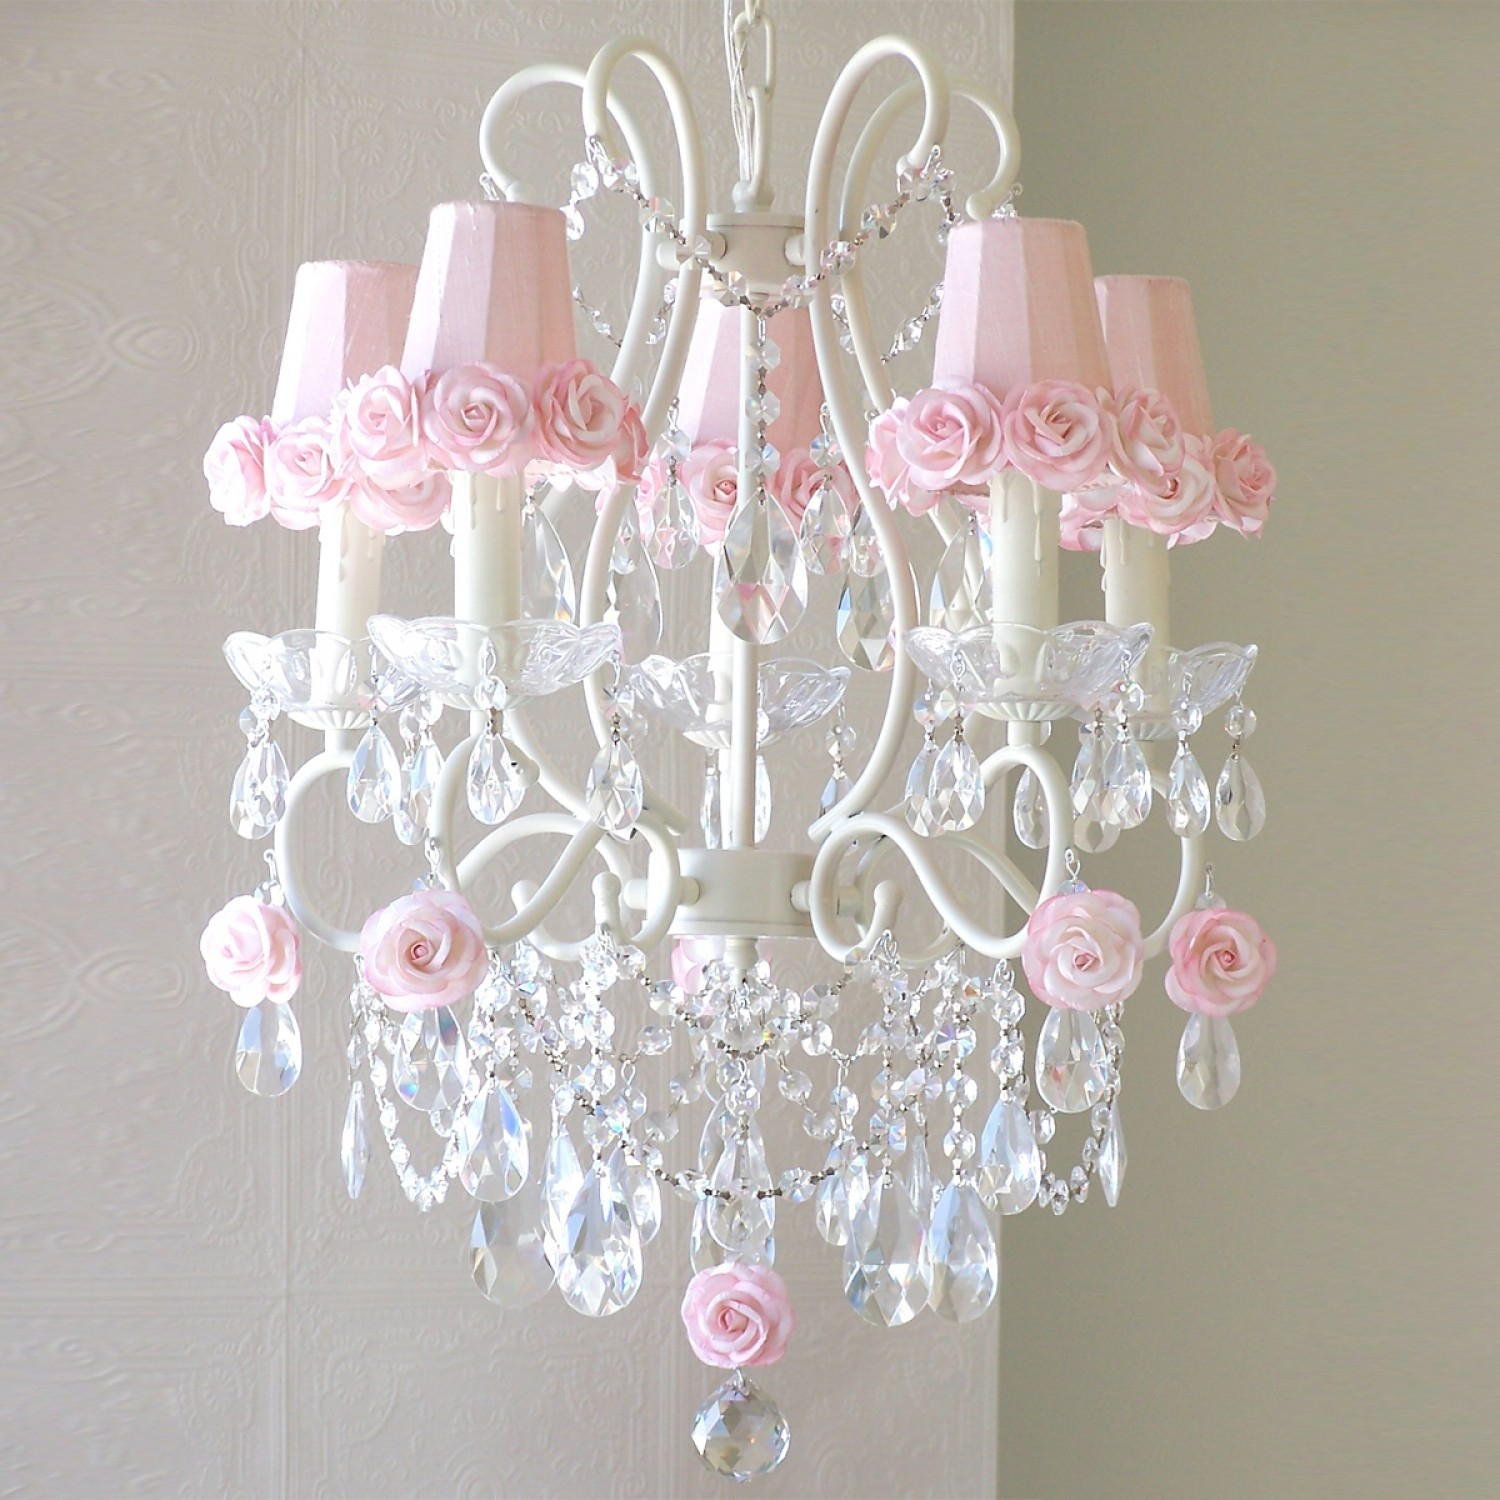 Awesome Lamp Shades For Chandeliers Chandelier From The Elegant In Lampshades For Chandeliers (View 13 of 25)